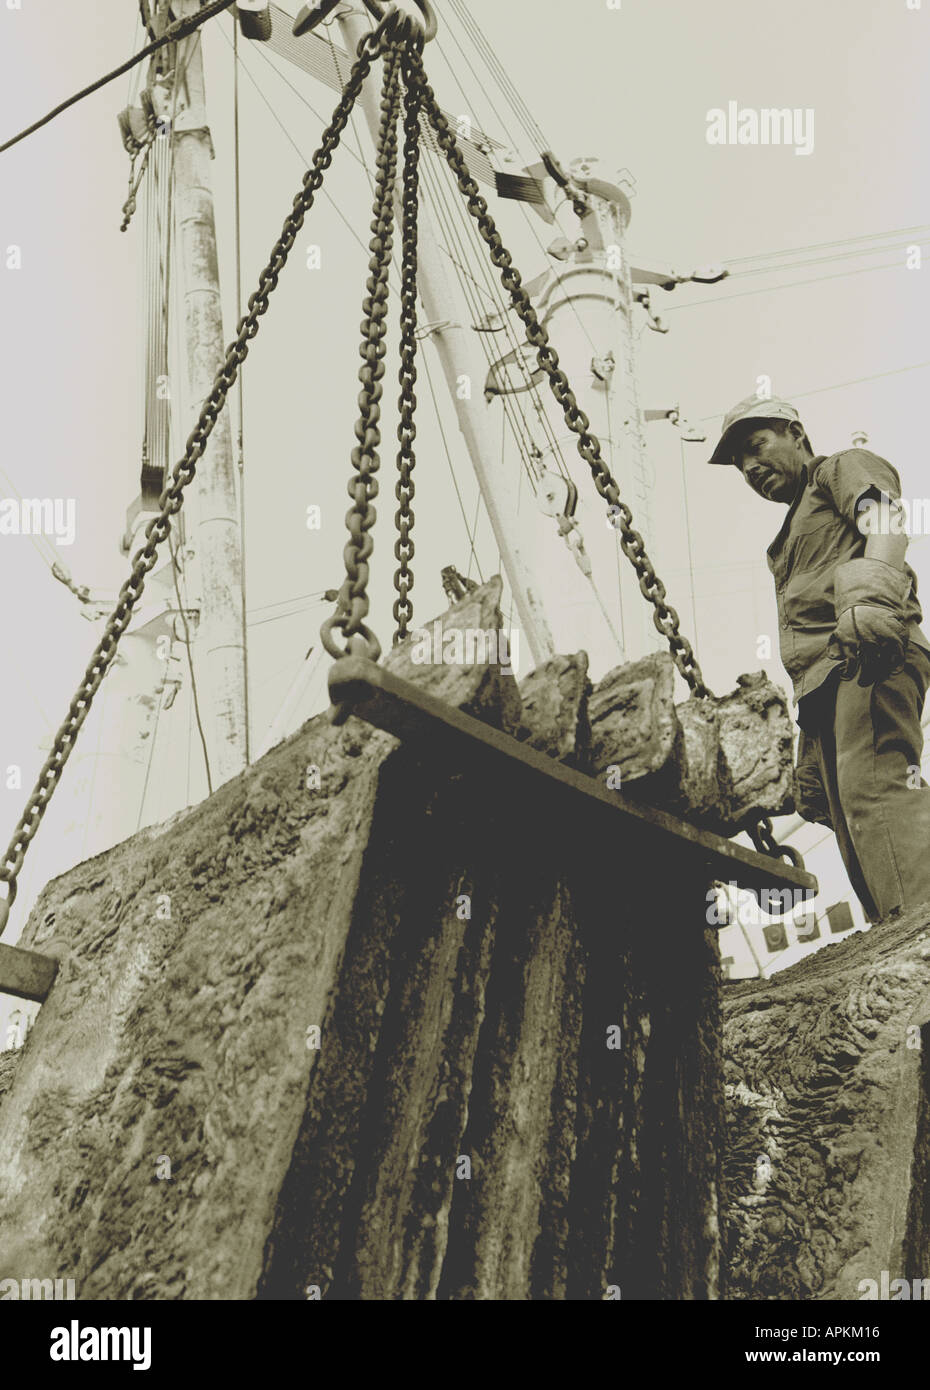 Loading blister copper for export at port of Ilo in southern Peru. taken in 1978 - Stock Image